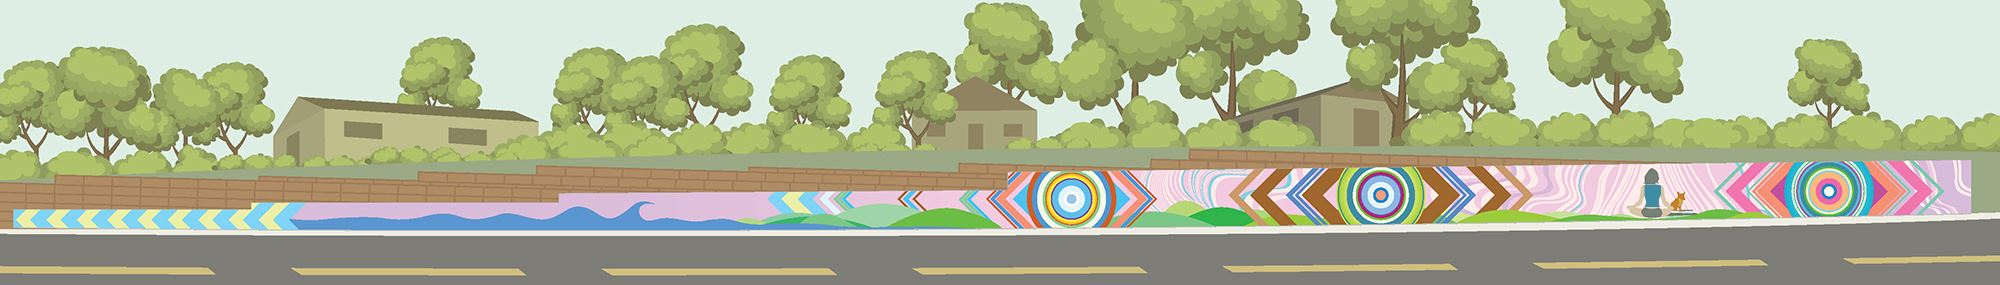 Matt Miller - College Ave. Mural Proposal